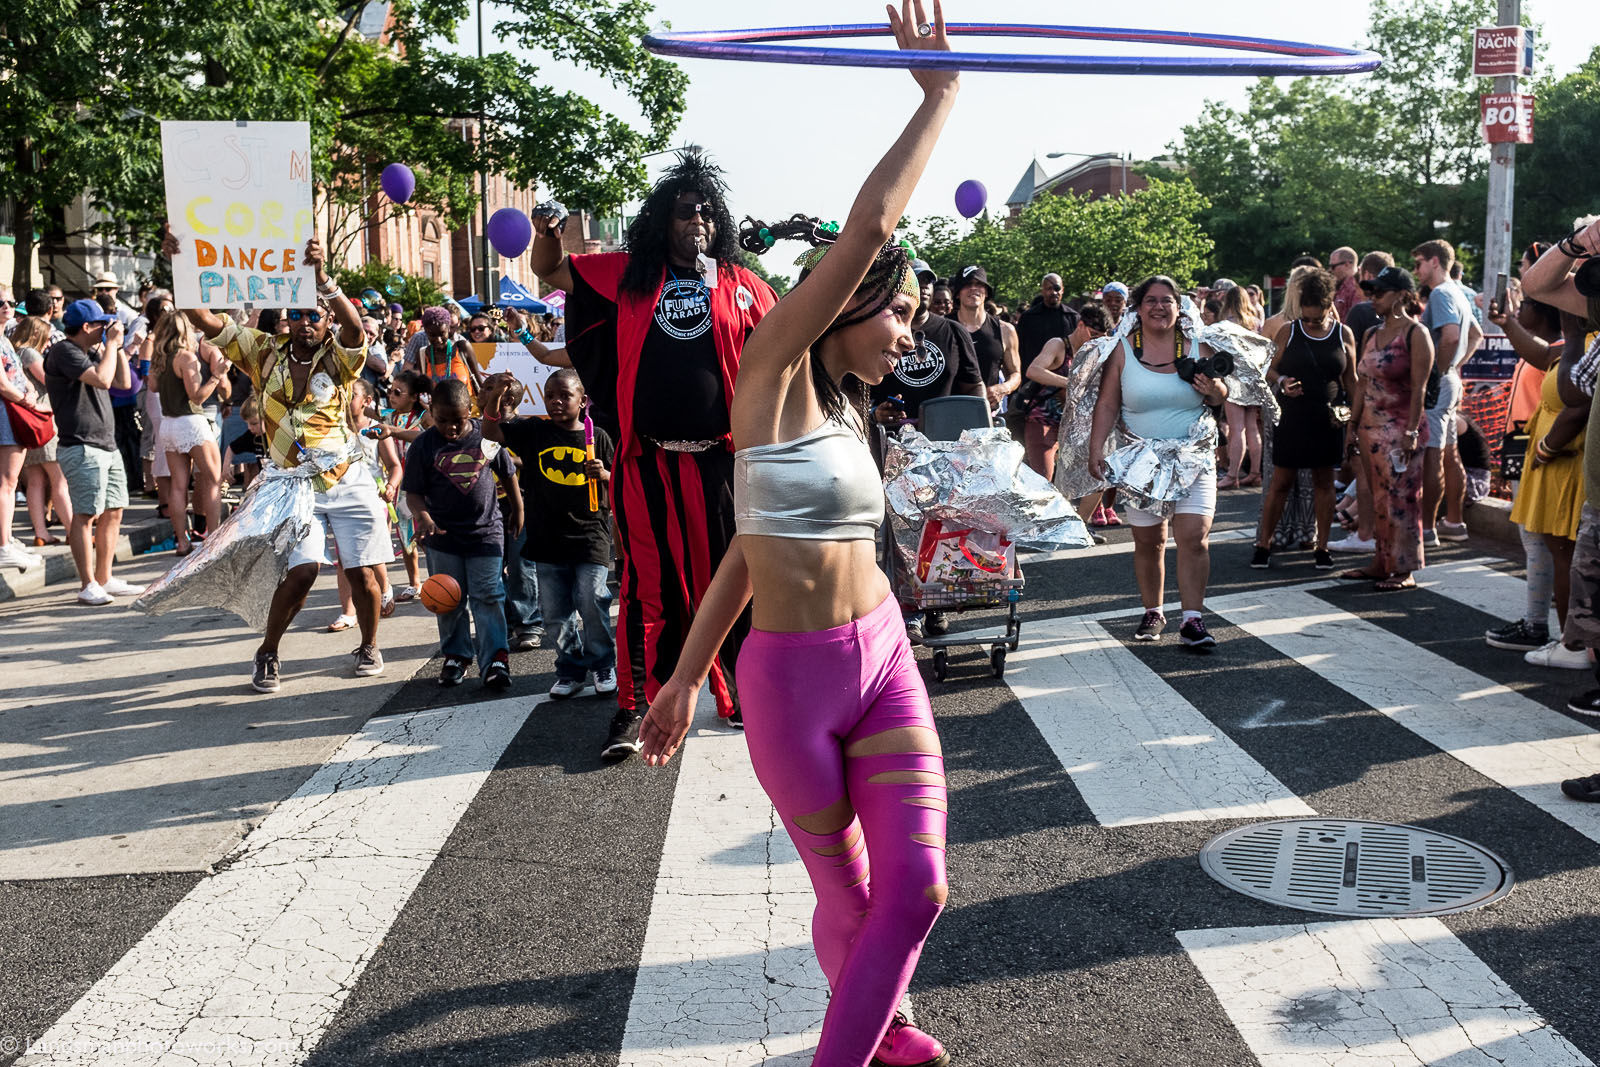 Marchers at the 2018 D.C. Funk Parade. (Courtesy Mike Landsman)